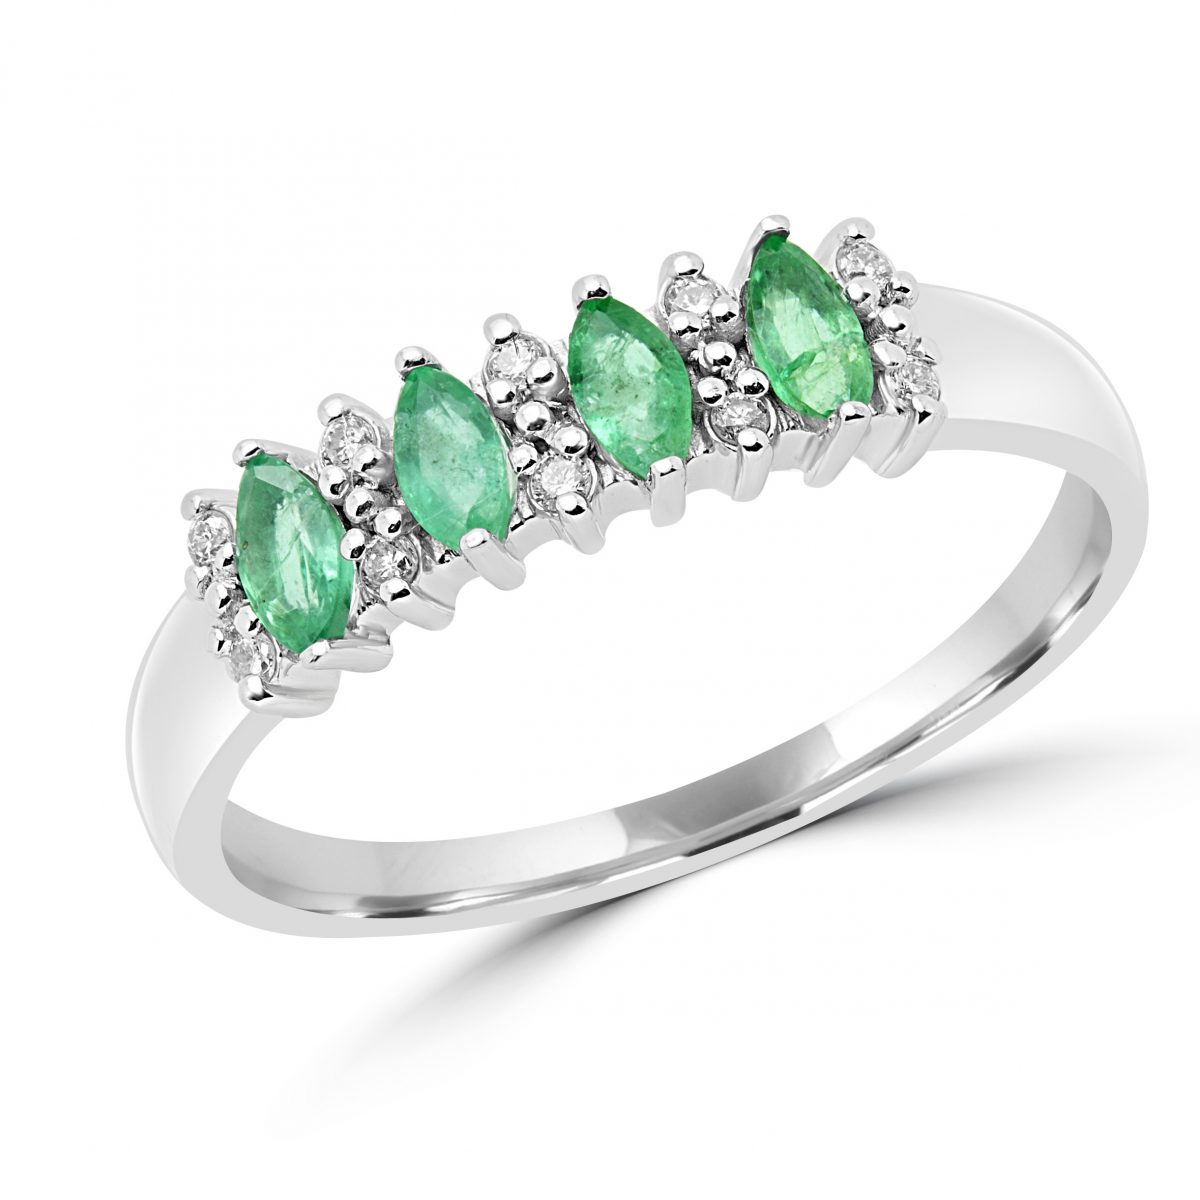 Marquise Cut Emerald Amp Diamond Fashion Cocktail Ring In